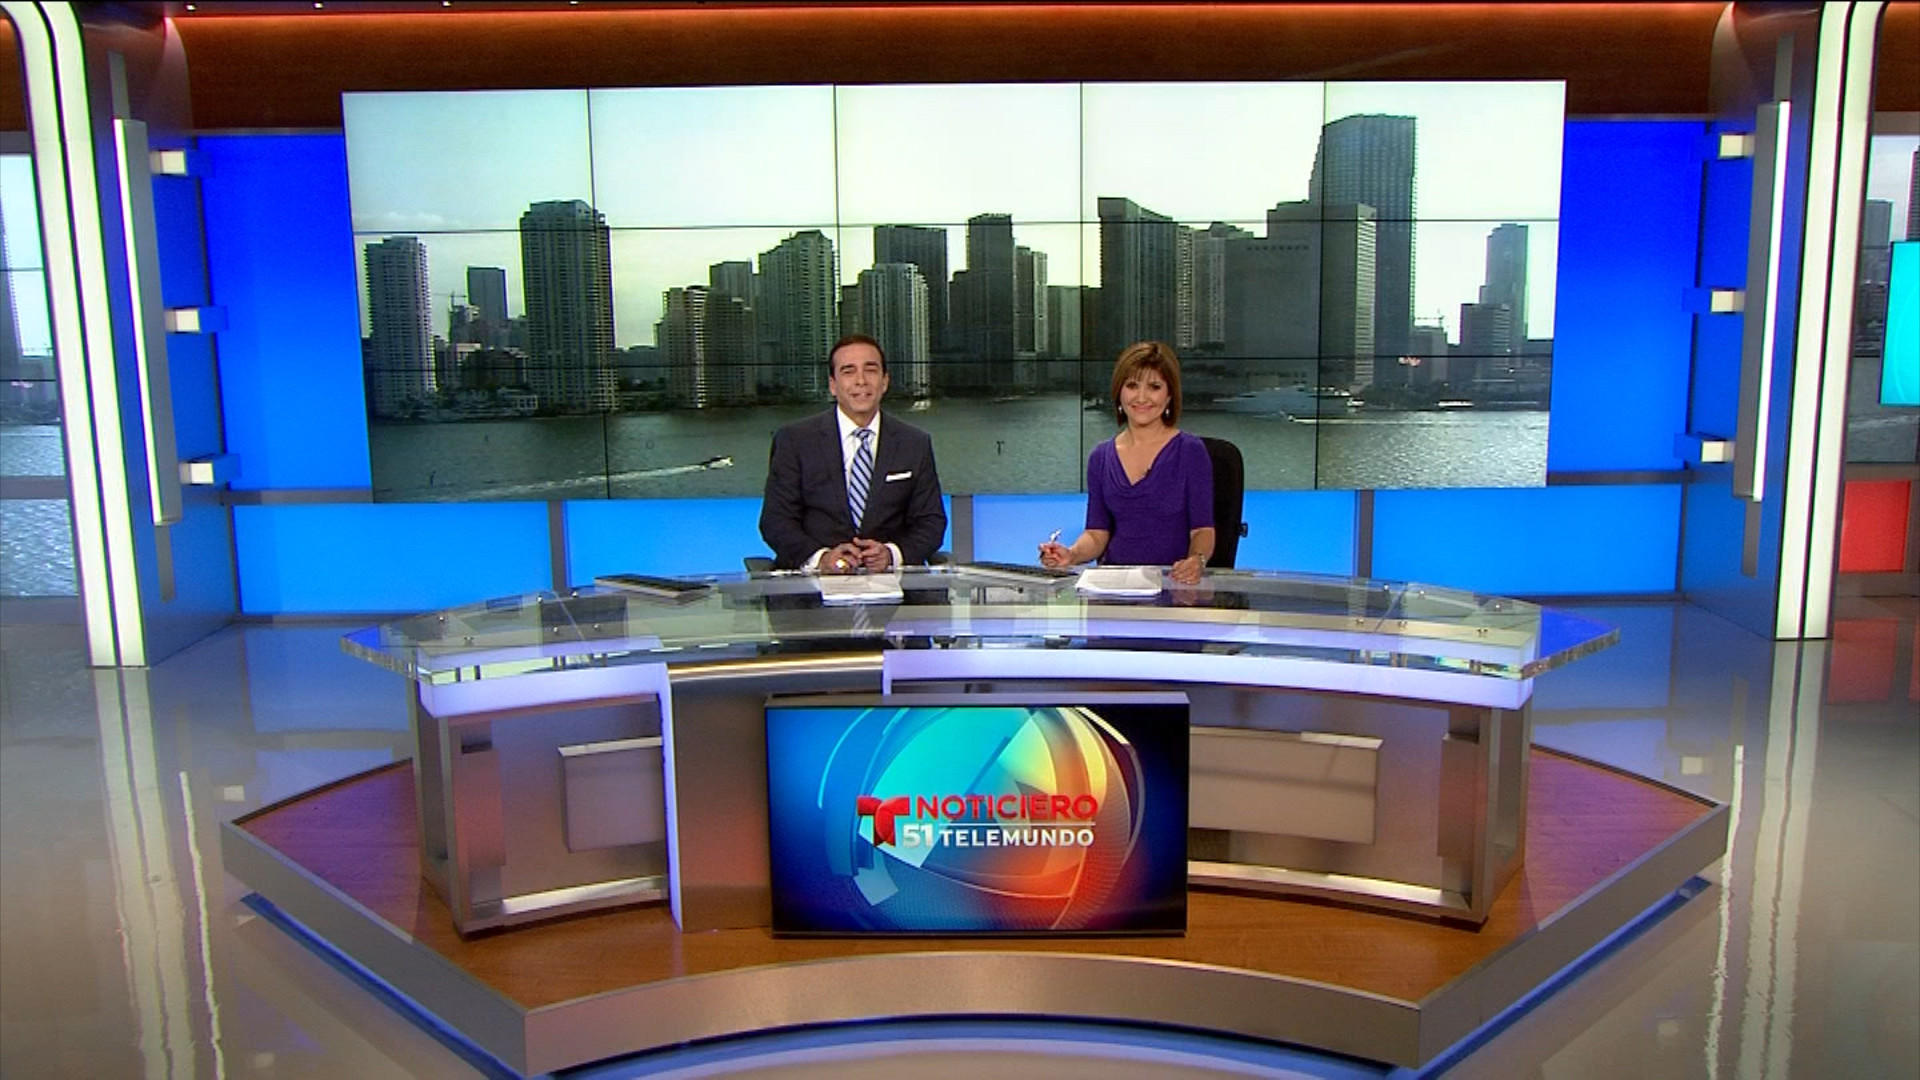 Telemundo evening co-anchors Ambrosio Hernandez and Daisy Ballmajo helm newscasts from a new news set at WSCV-Ch. 51's studios in Miramar.